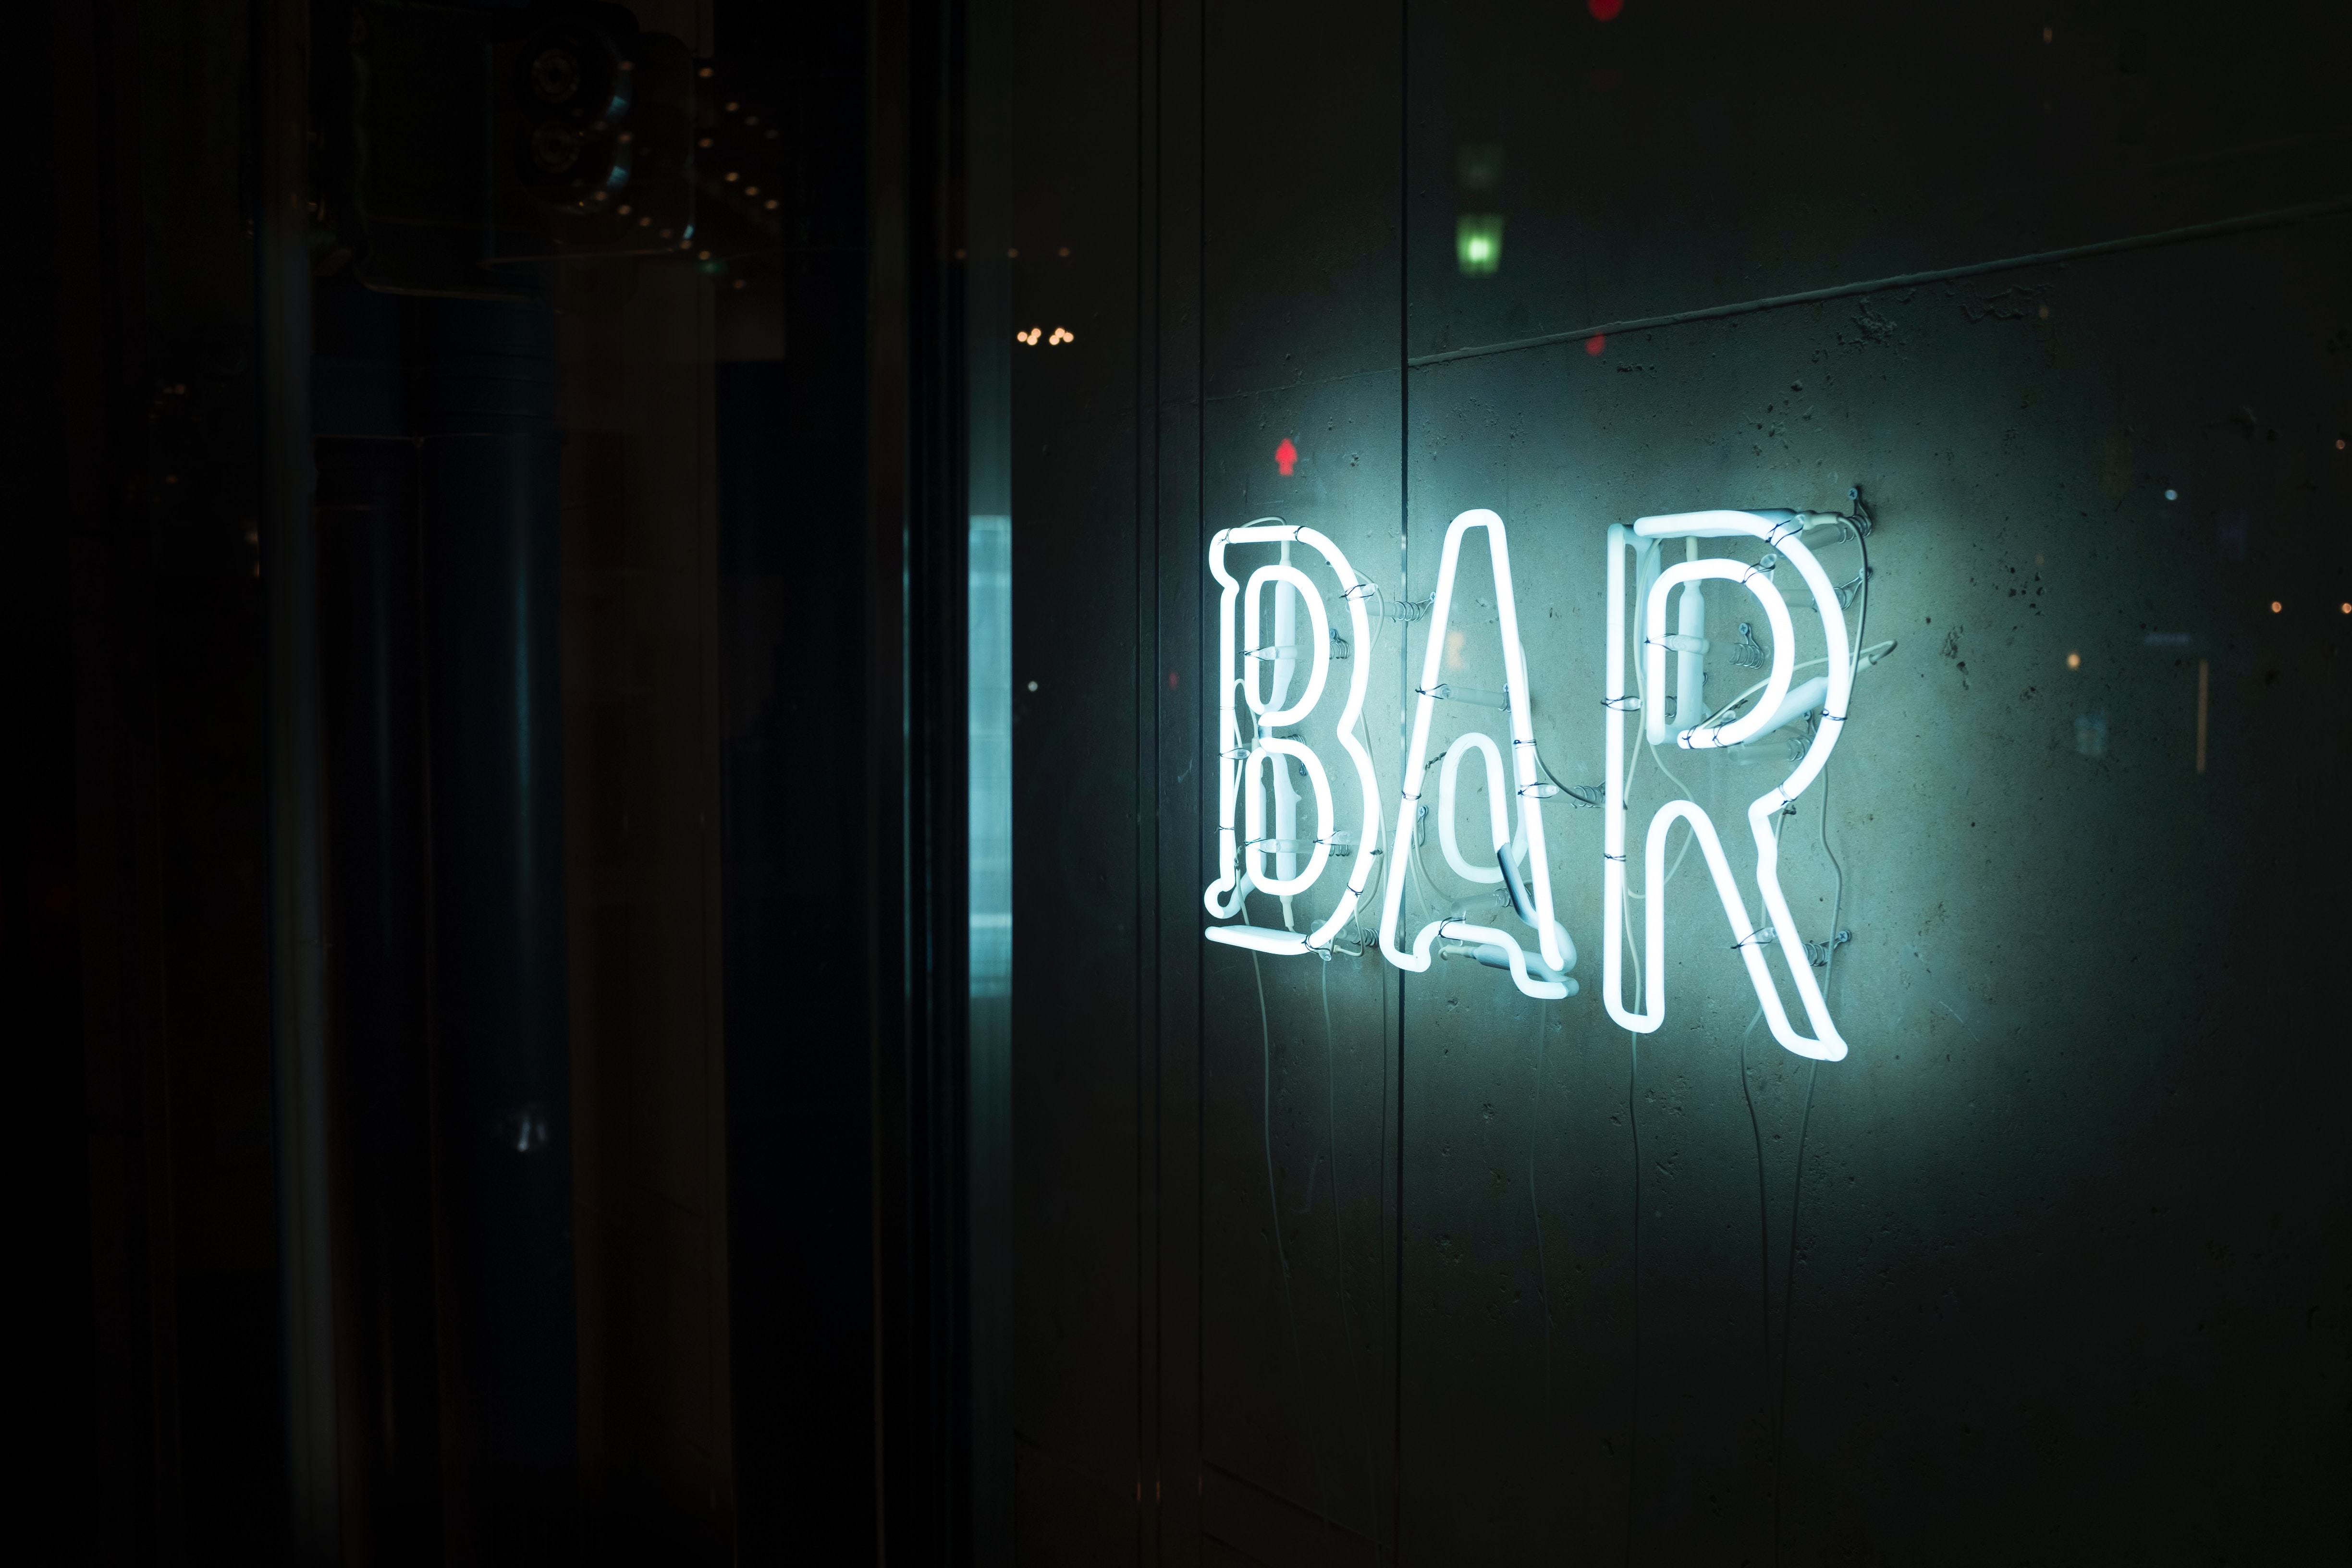 bar alex-knight-YGllNX_ol-A-unsplash